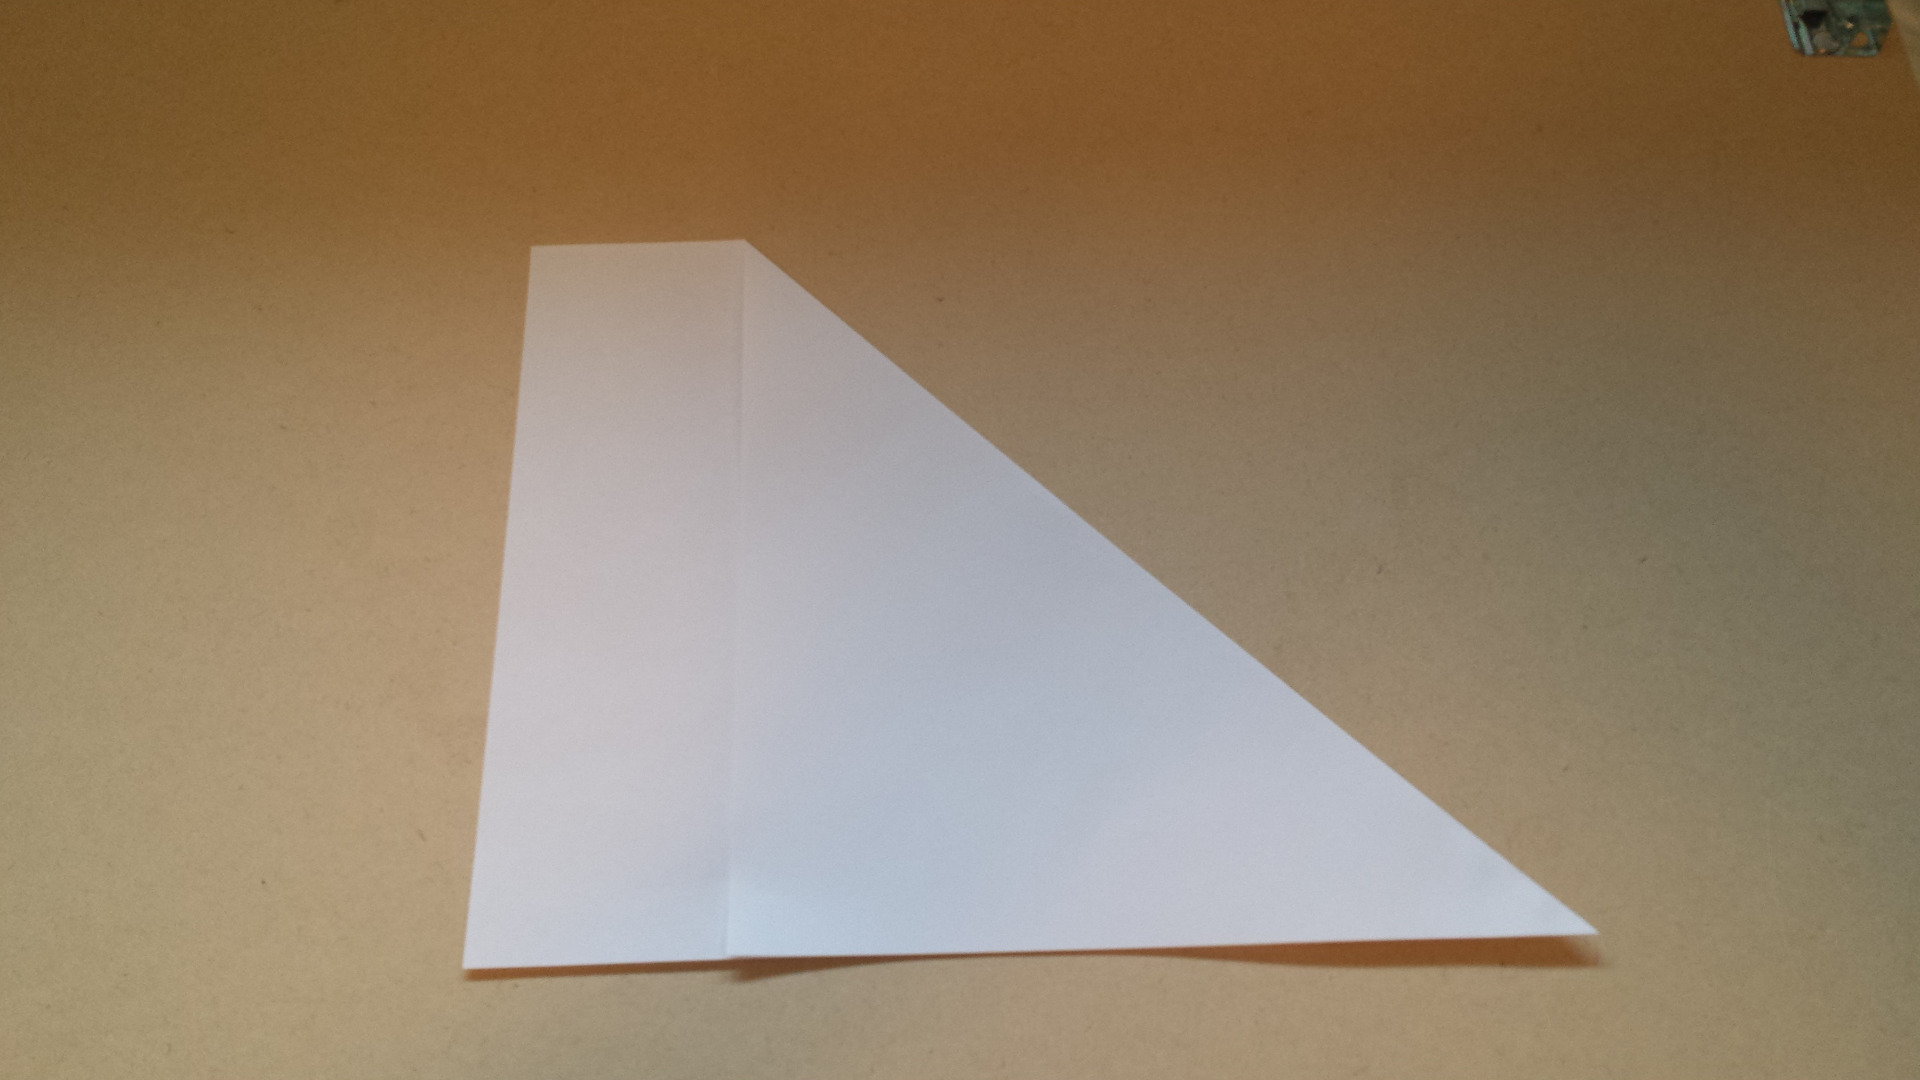 Picture of Fold Diagonally So That the Edges Line Up Together and Form a Right Triangle